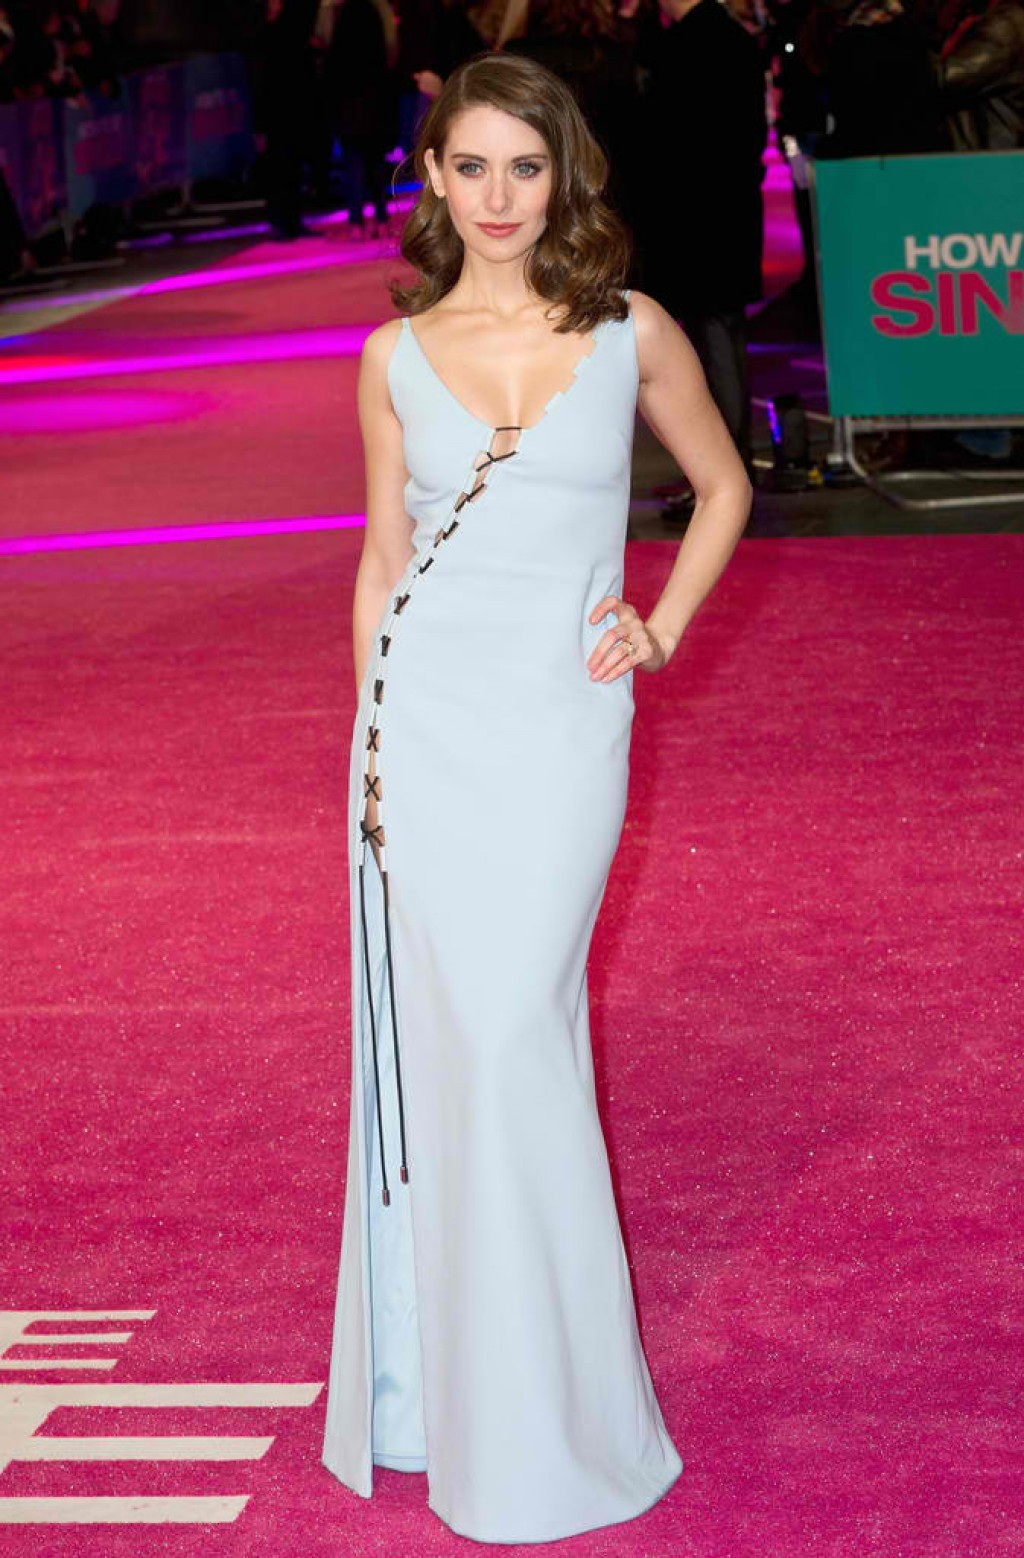 How-To-Be-Single-London-Premiere-Alison-Brie-Dress-Look-1024x1558